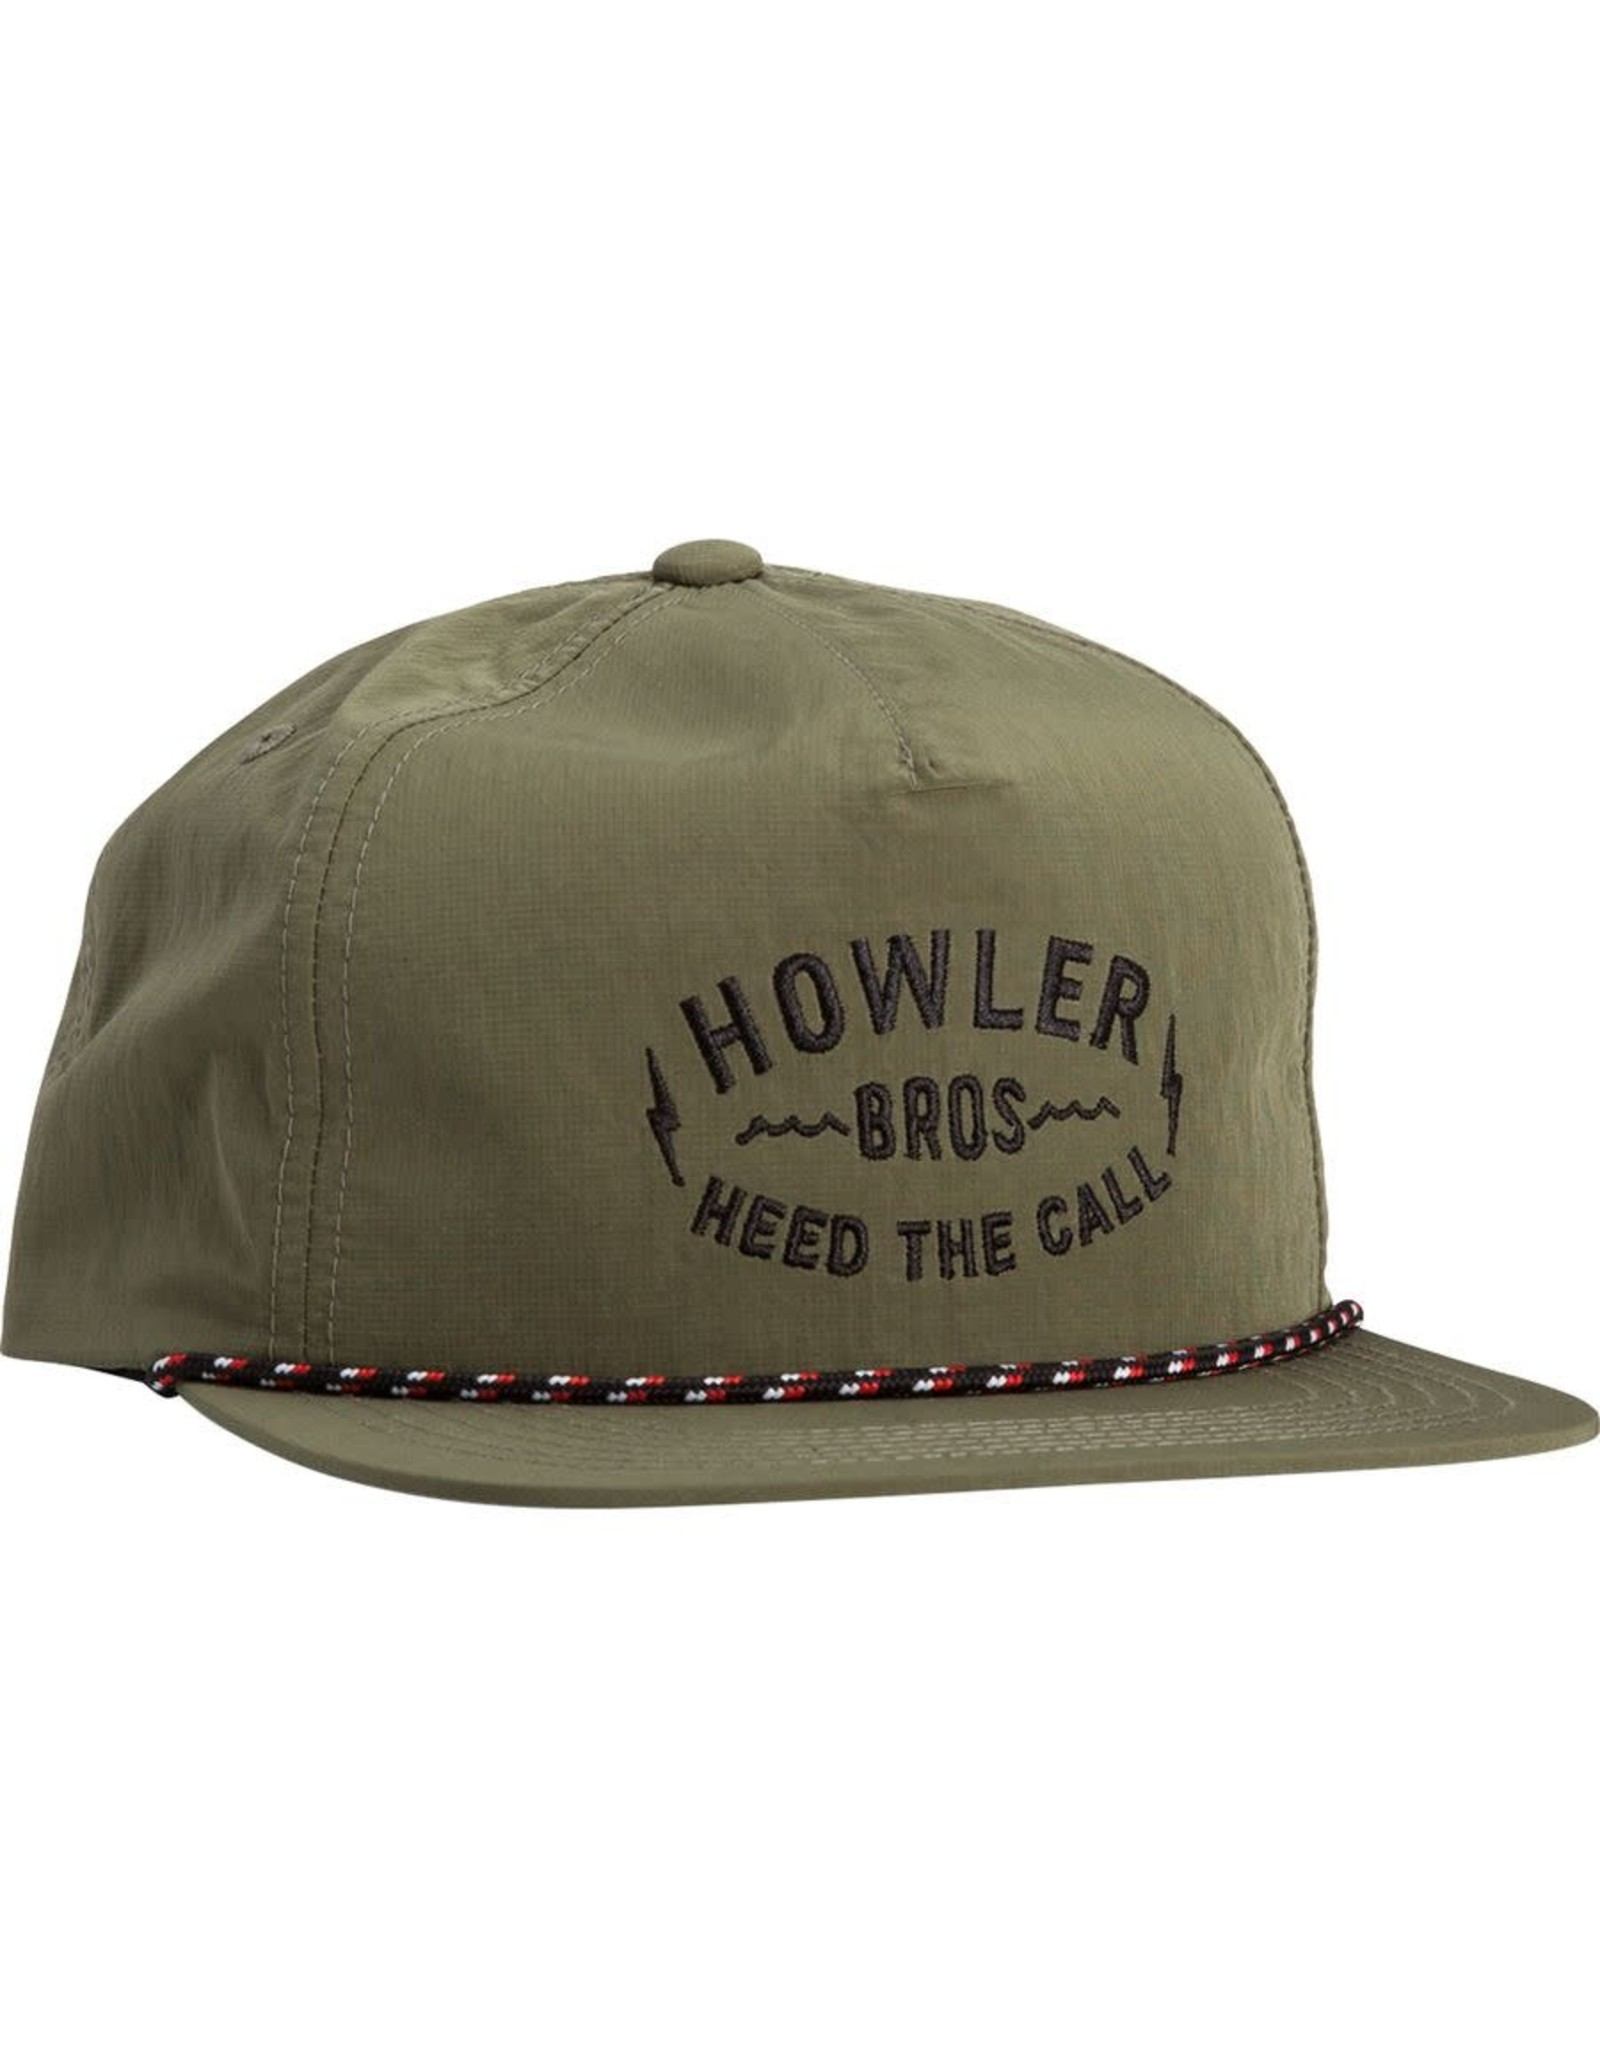 Howler Bros HB Painted Howler Snapback Hat- Olive Nylon